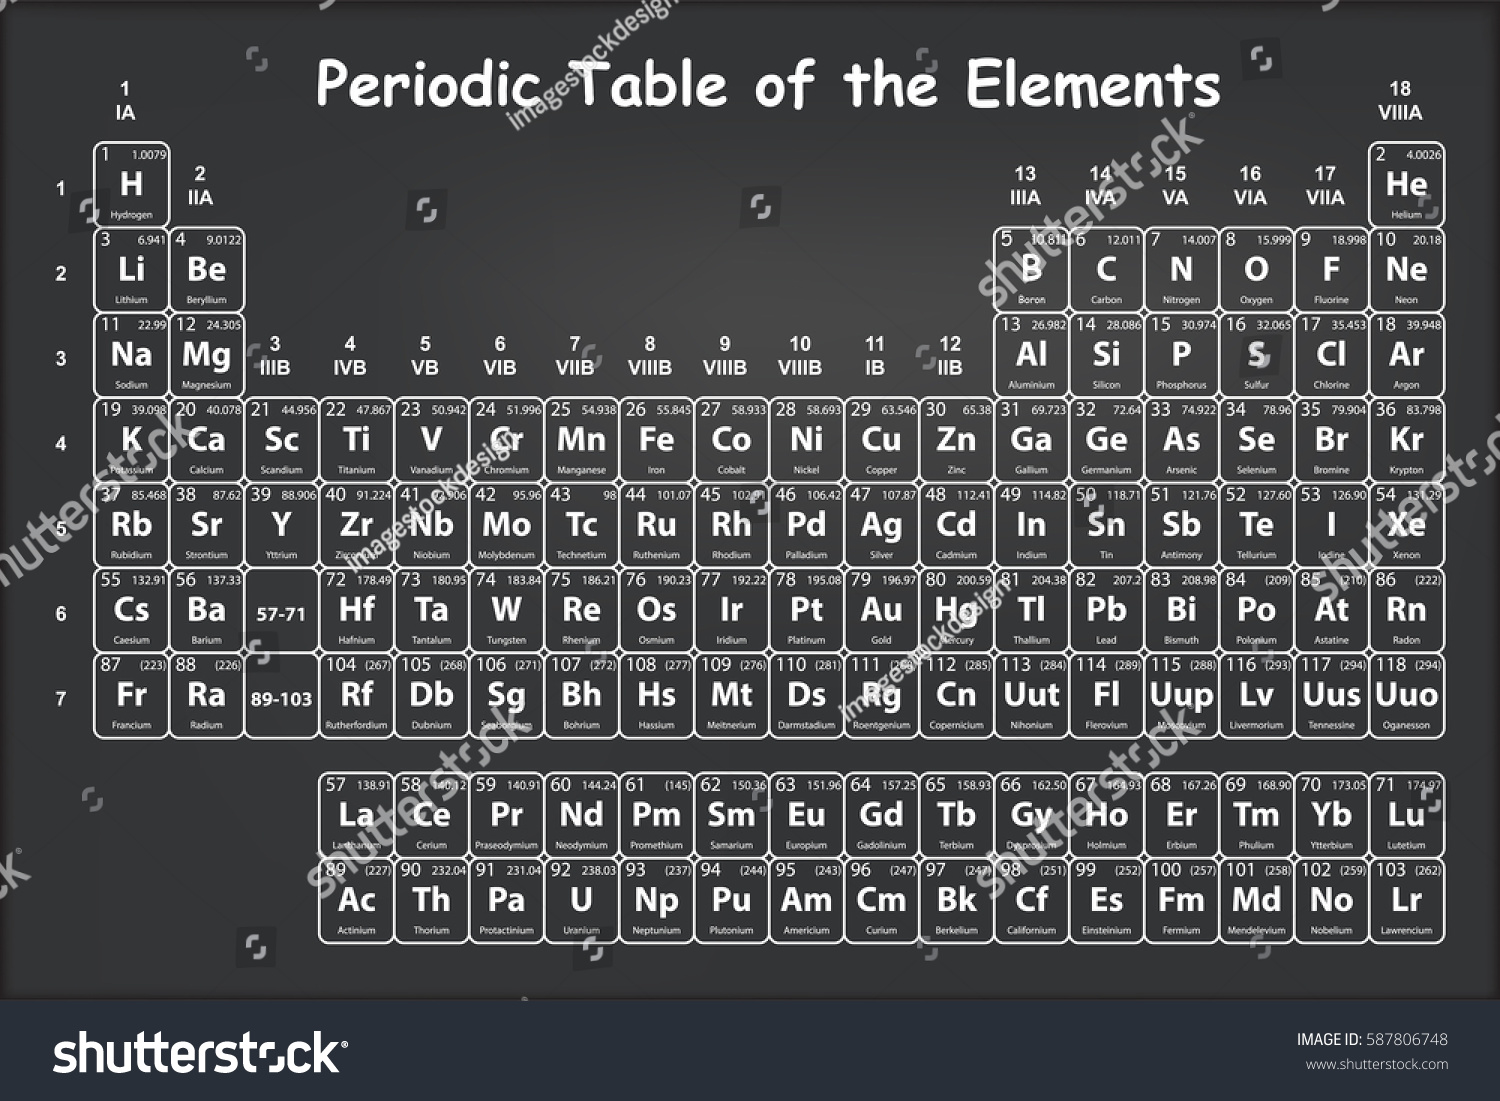 Periodic table elements atomic number symbol stock vector 587806748 periodic table of the elements with atomic number symbol and weight on black chalkboard vector biocorpaavc Choice Image